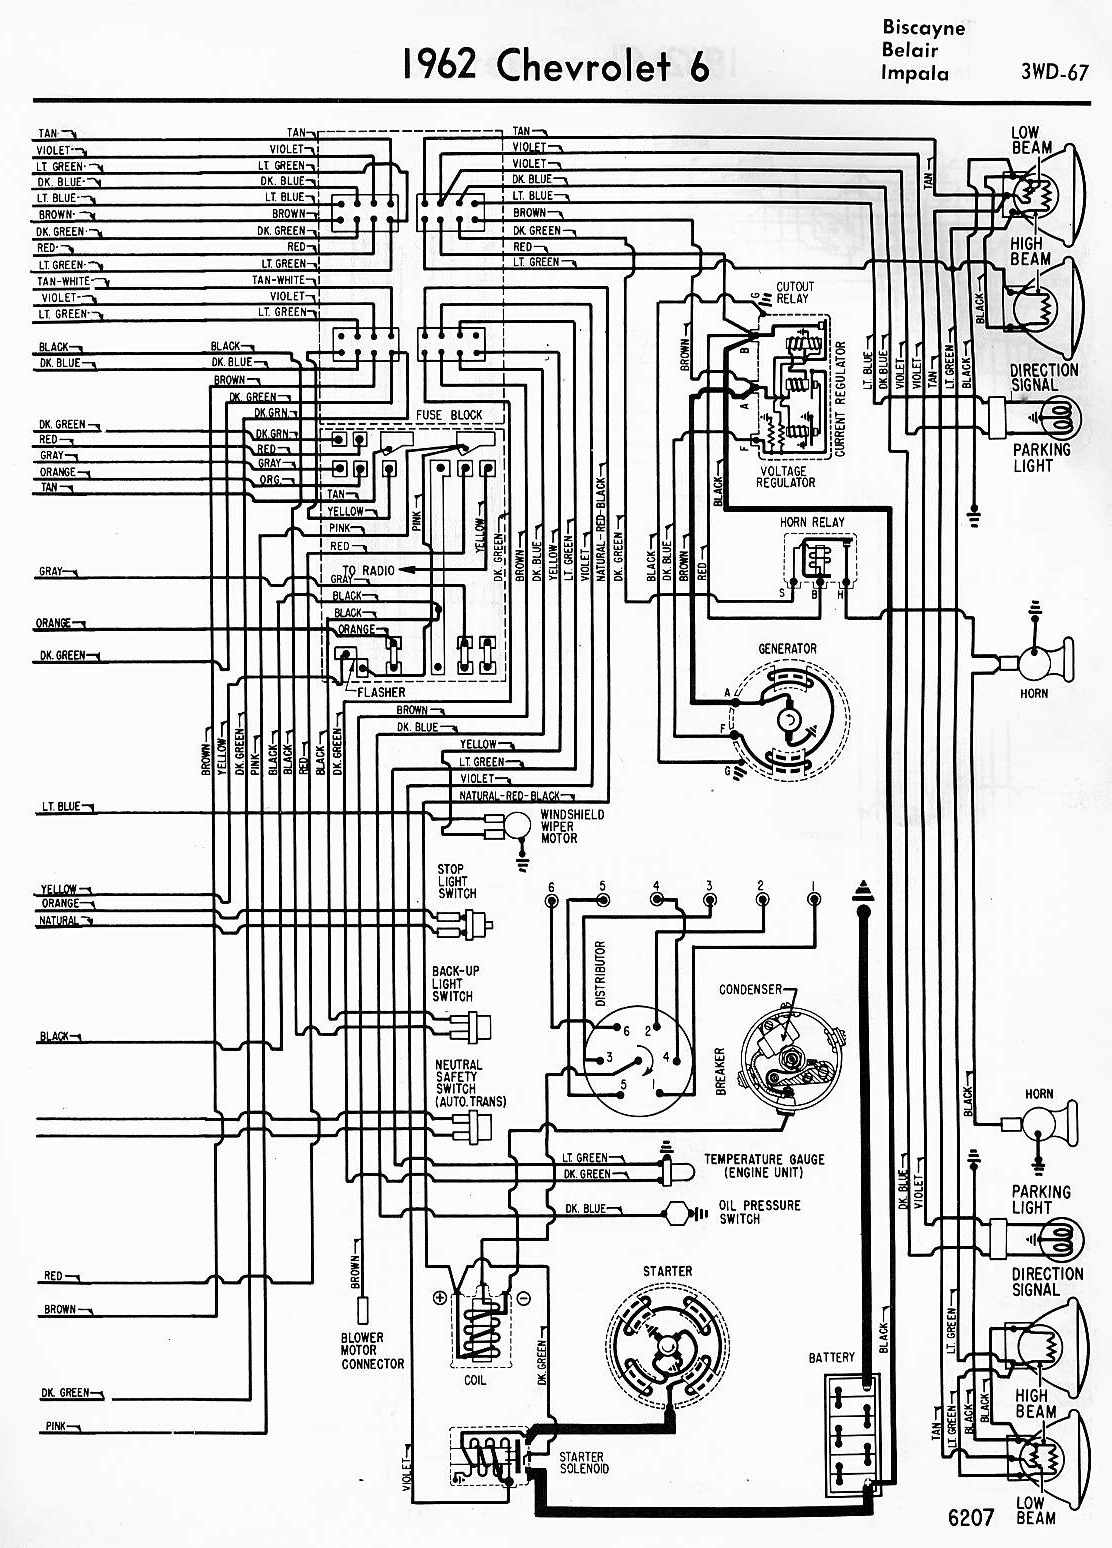 Electrical+Wiring+Diagram+Of+1964+Chevrolet+6 electrical wiring diagram of 1962 chevrolet 6 all about wiring 1964 ford galaxie wiring harness at soozxer.org